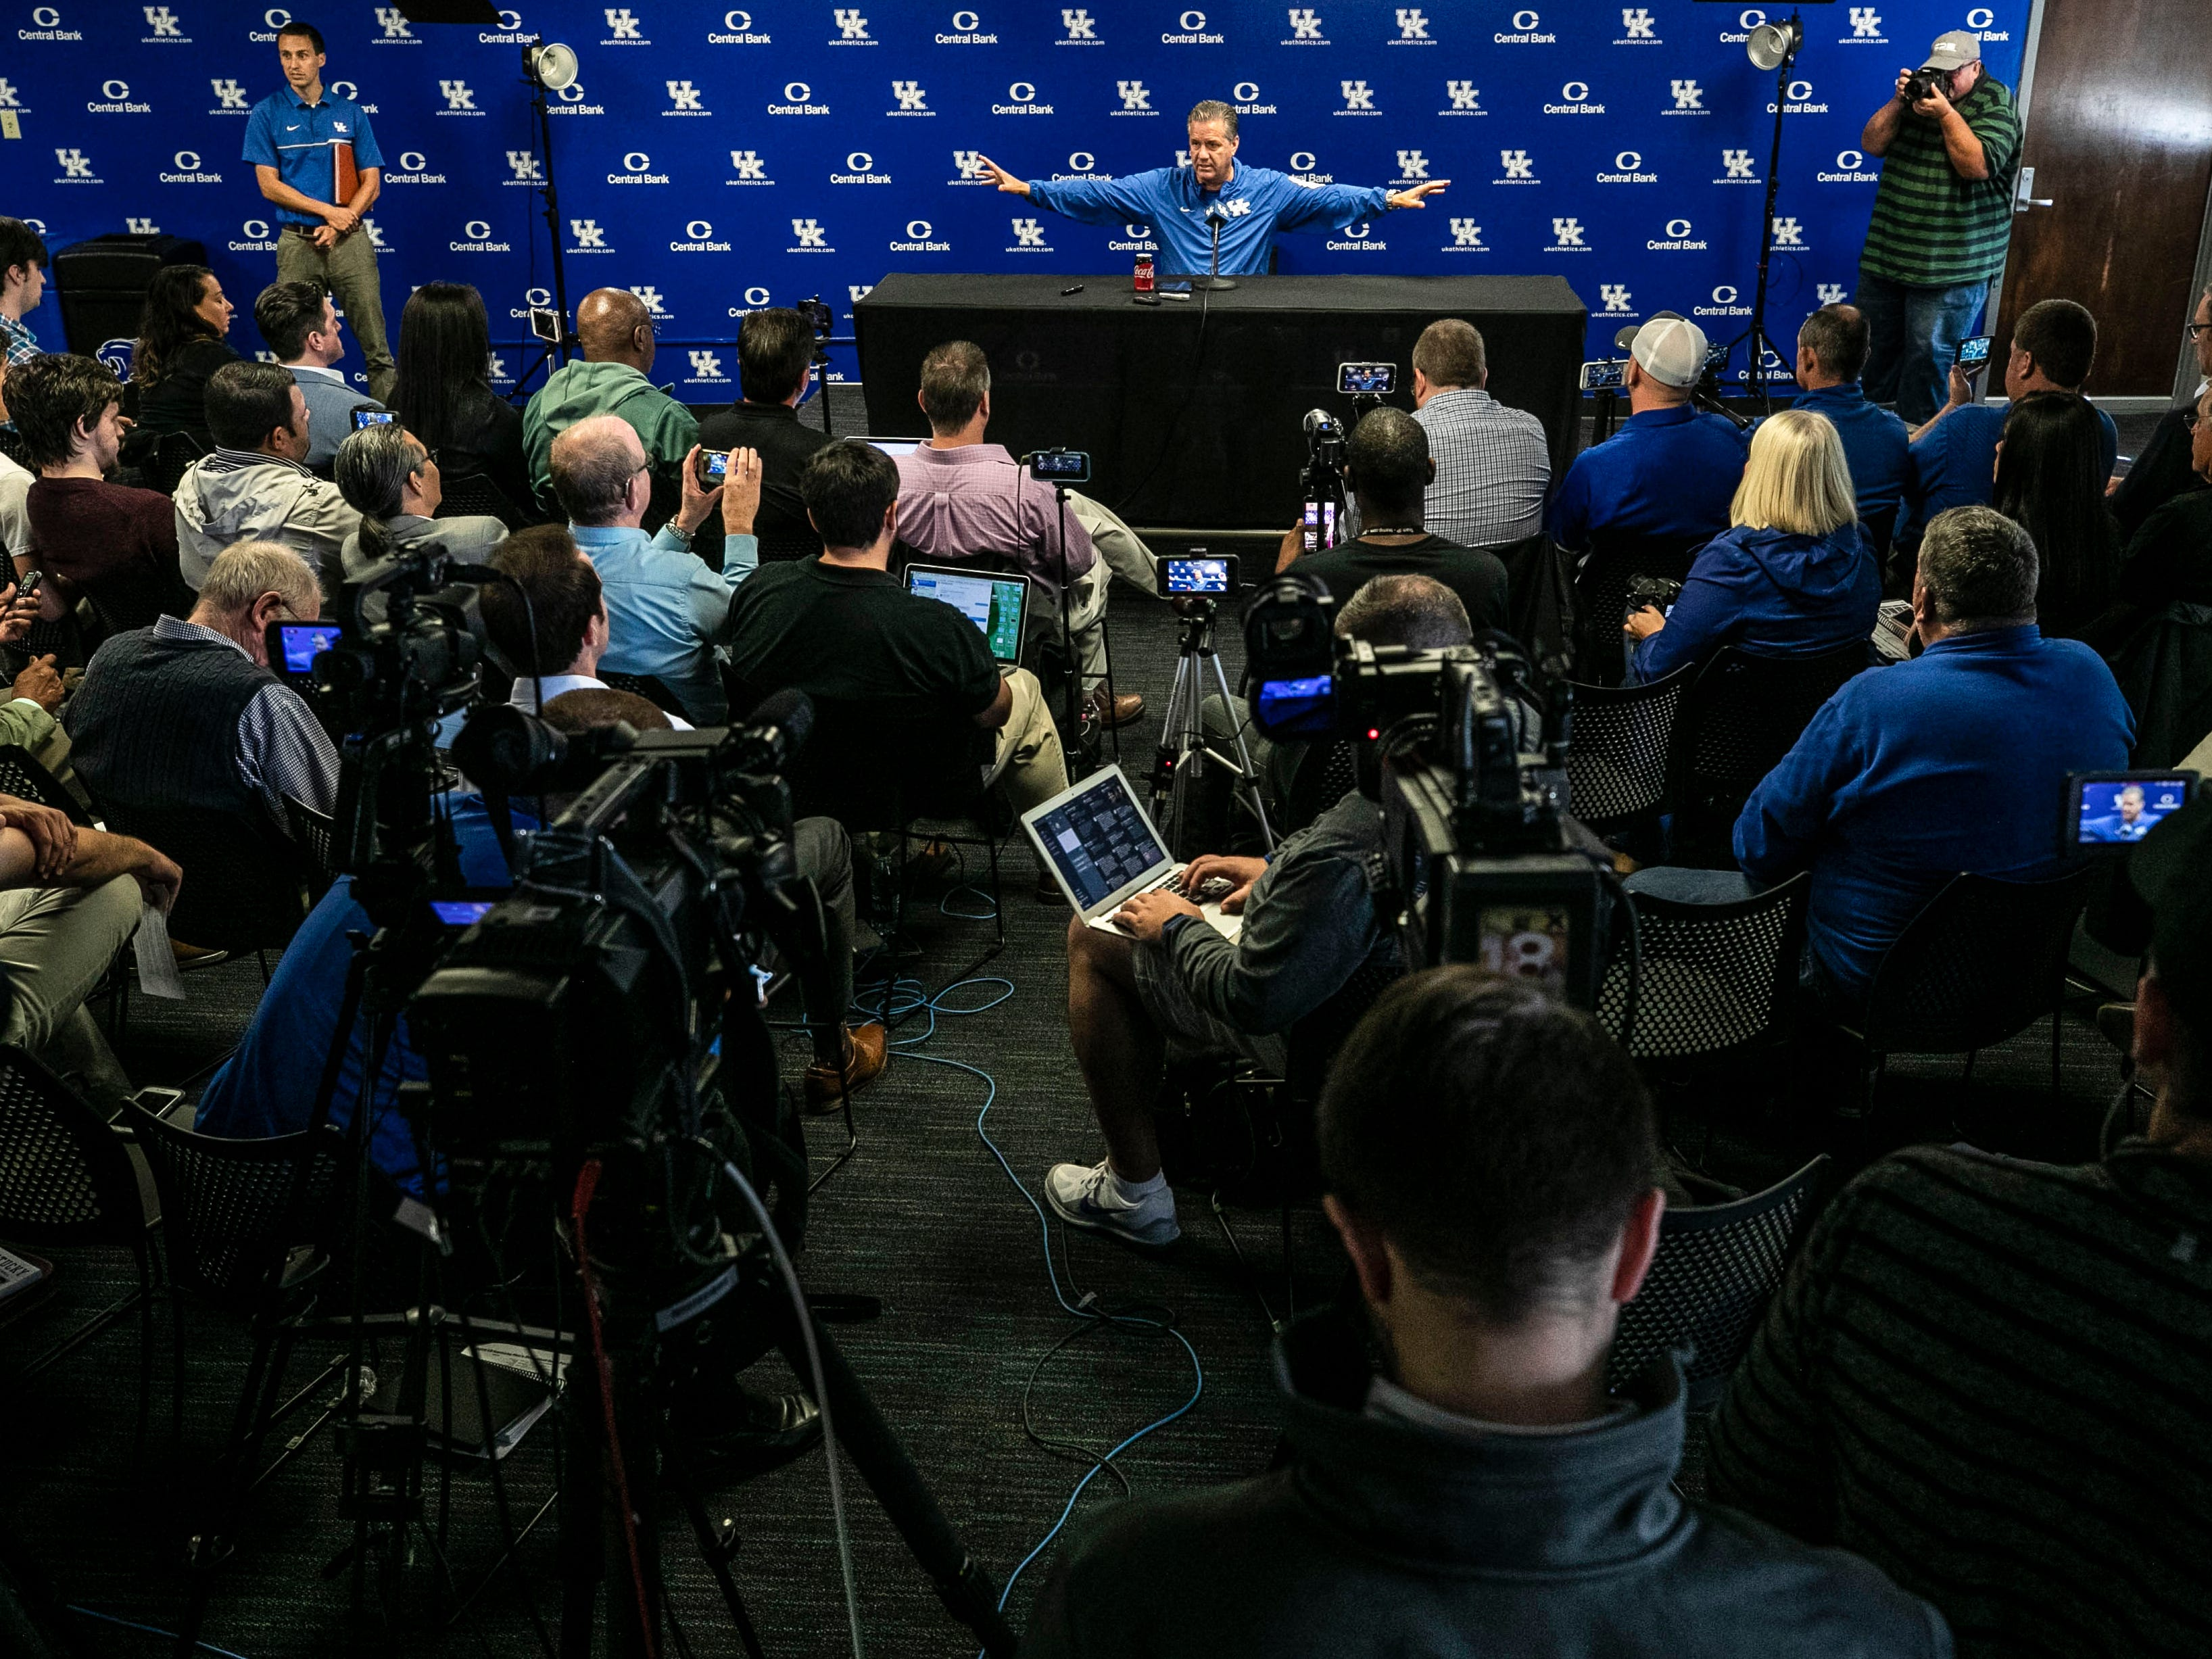 As around 100 reporters, bloggers and camera people crowded into the media room at the Joe Kraft Center, Kentucky basketball coach John Calipari talked about the UK football team's success as well as gave a several minutes-long answer about players and the NBA during a 45 minute press conference about the 2018-19 team Thursday afternoon in Lexington.